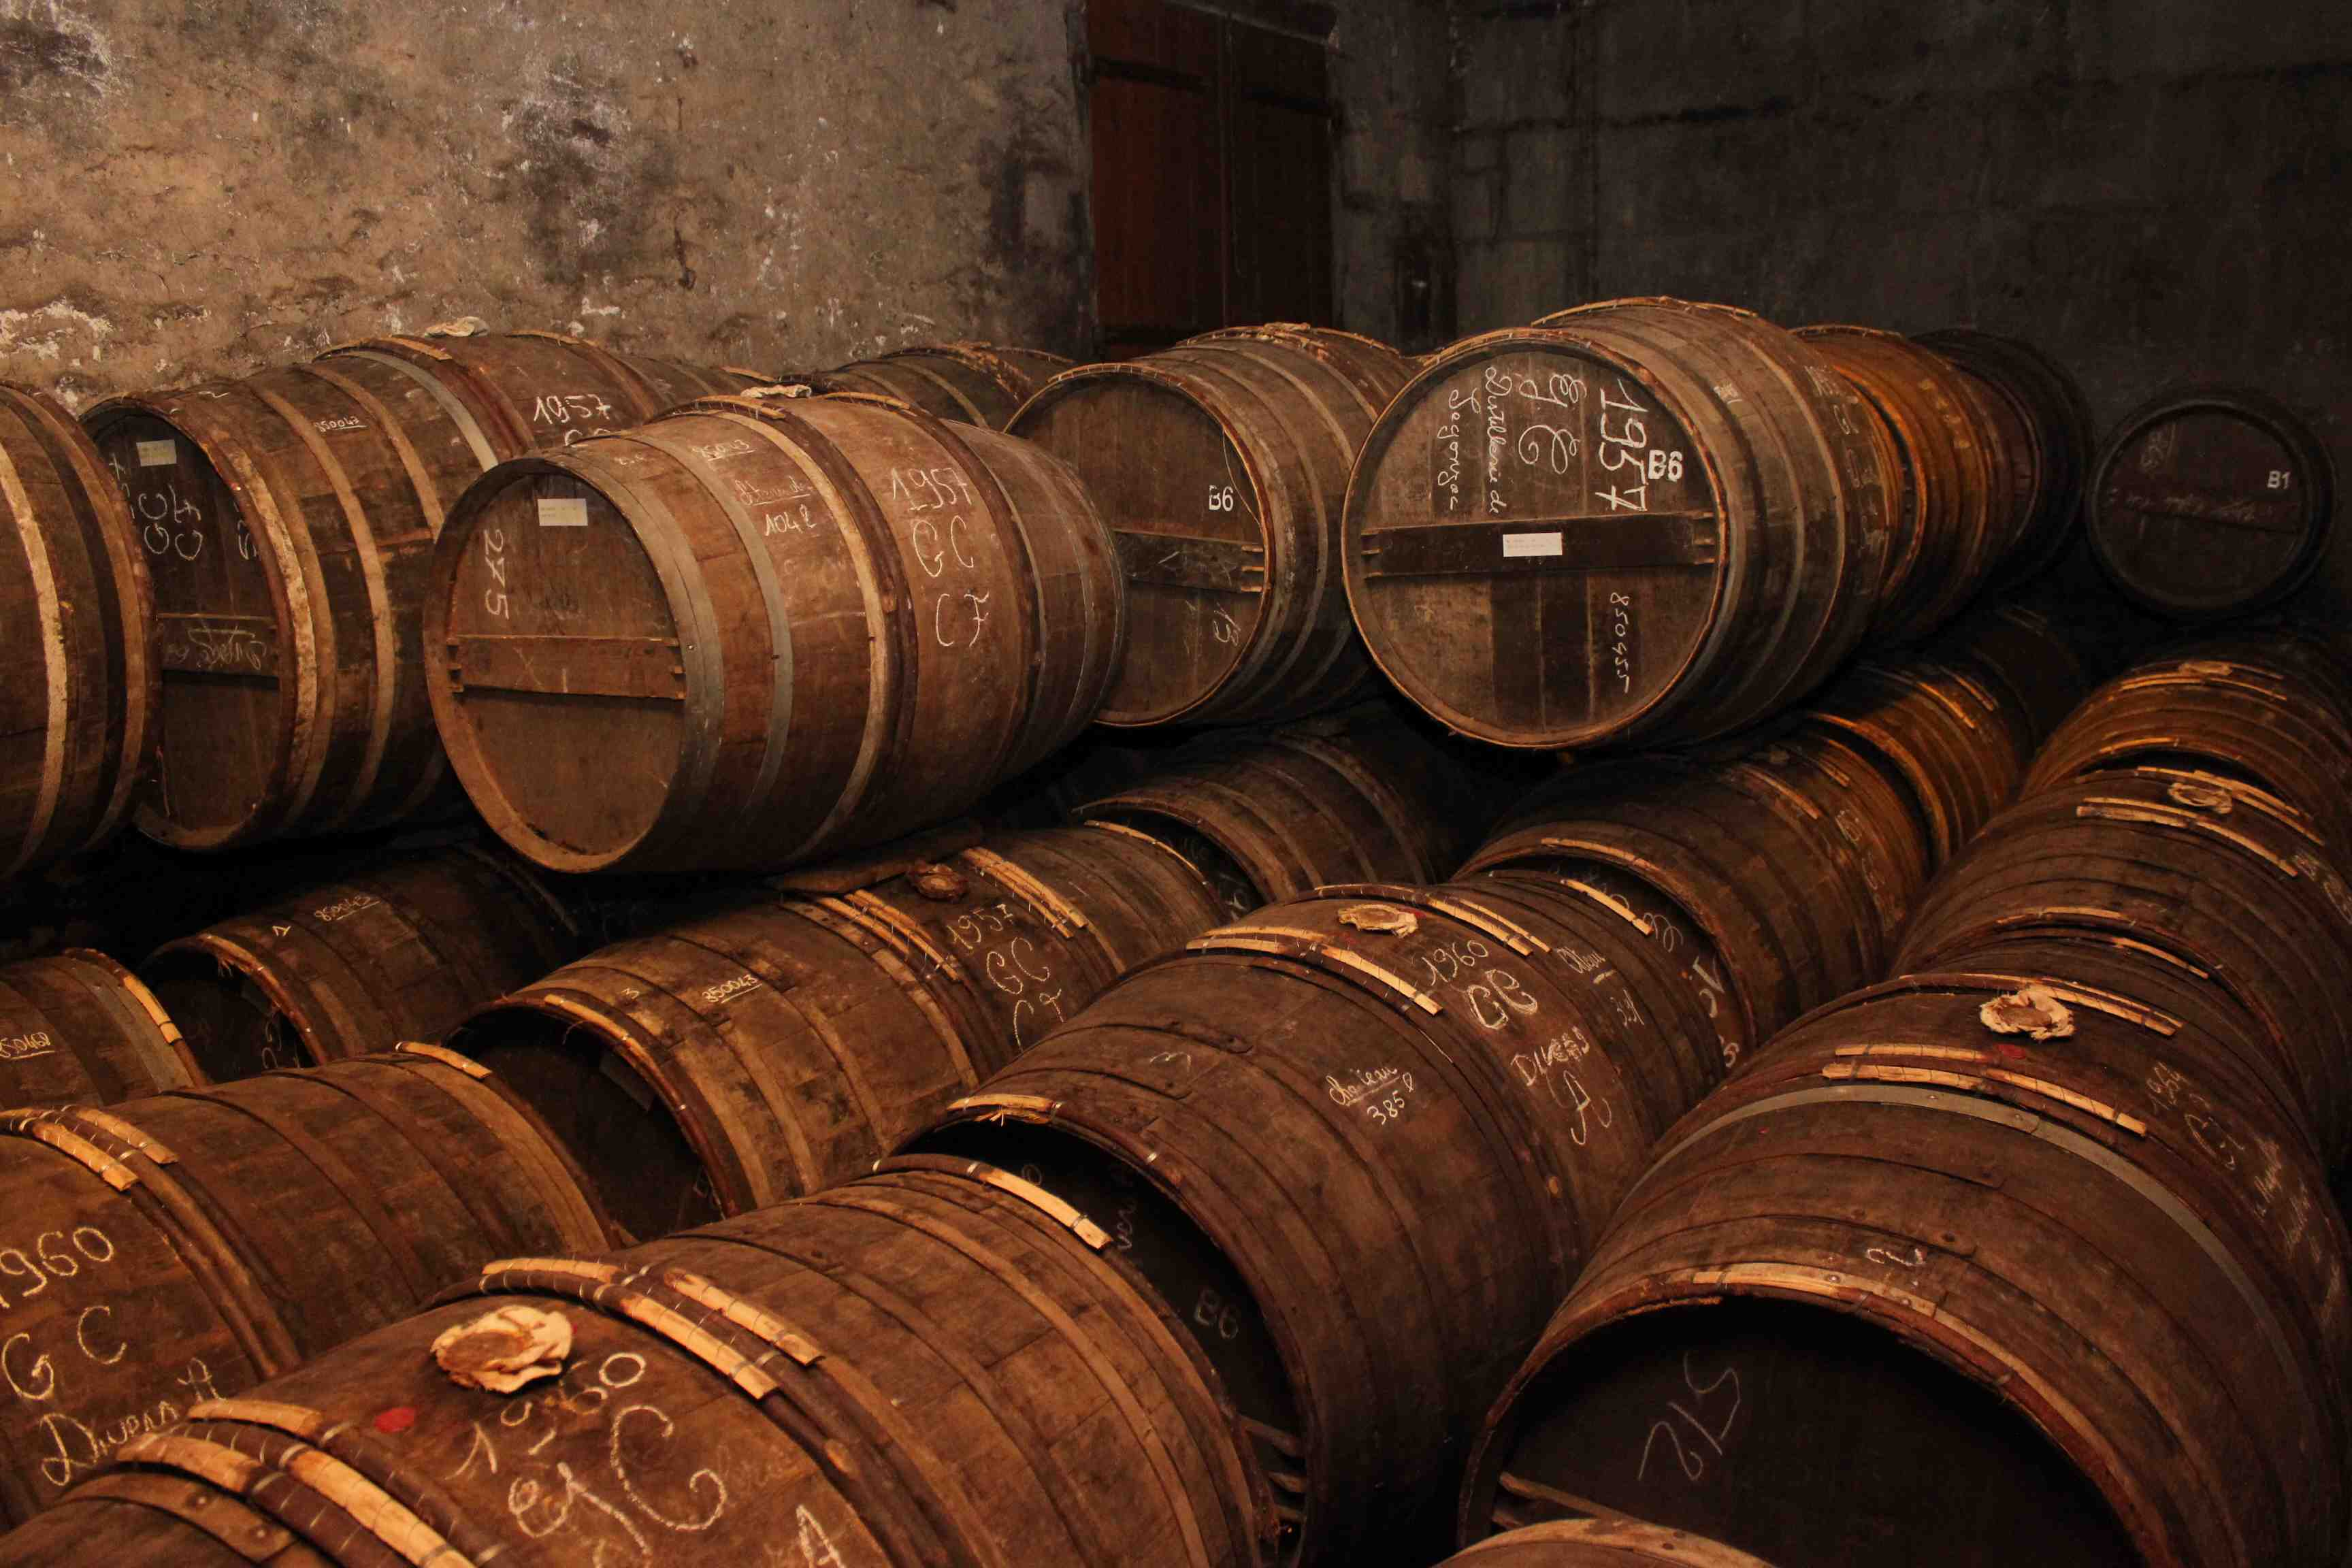 Oak casks